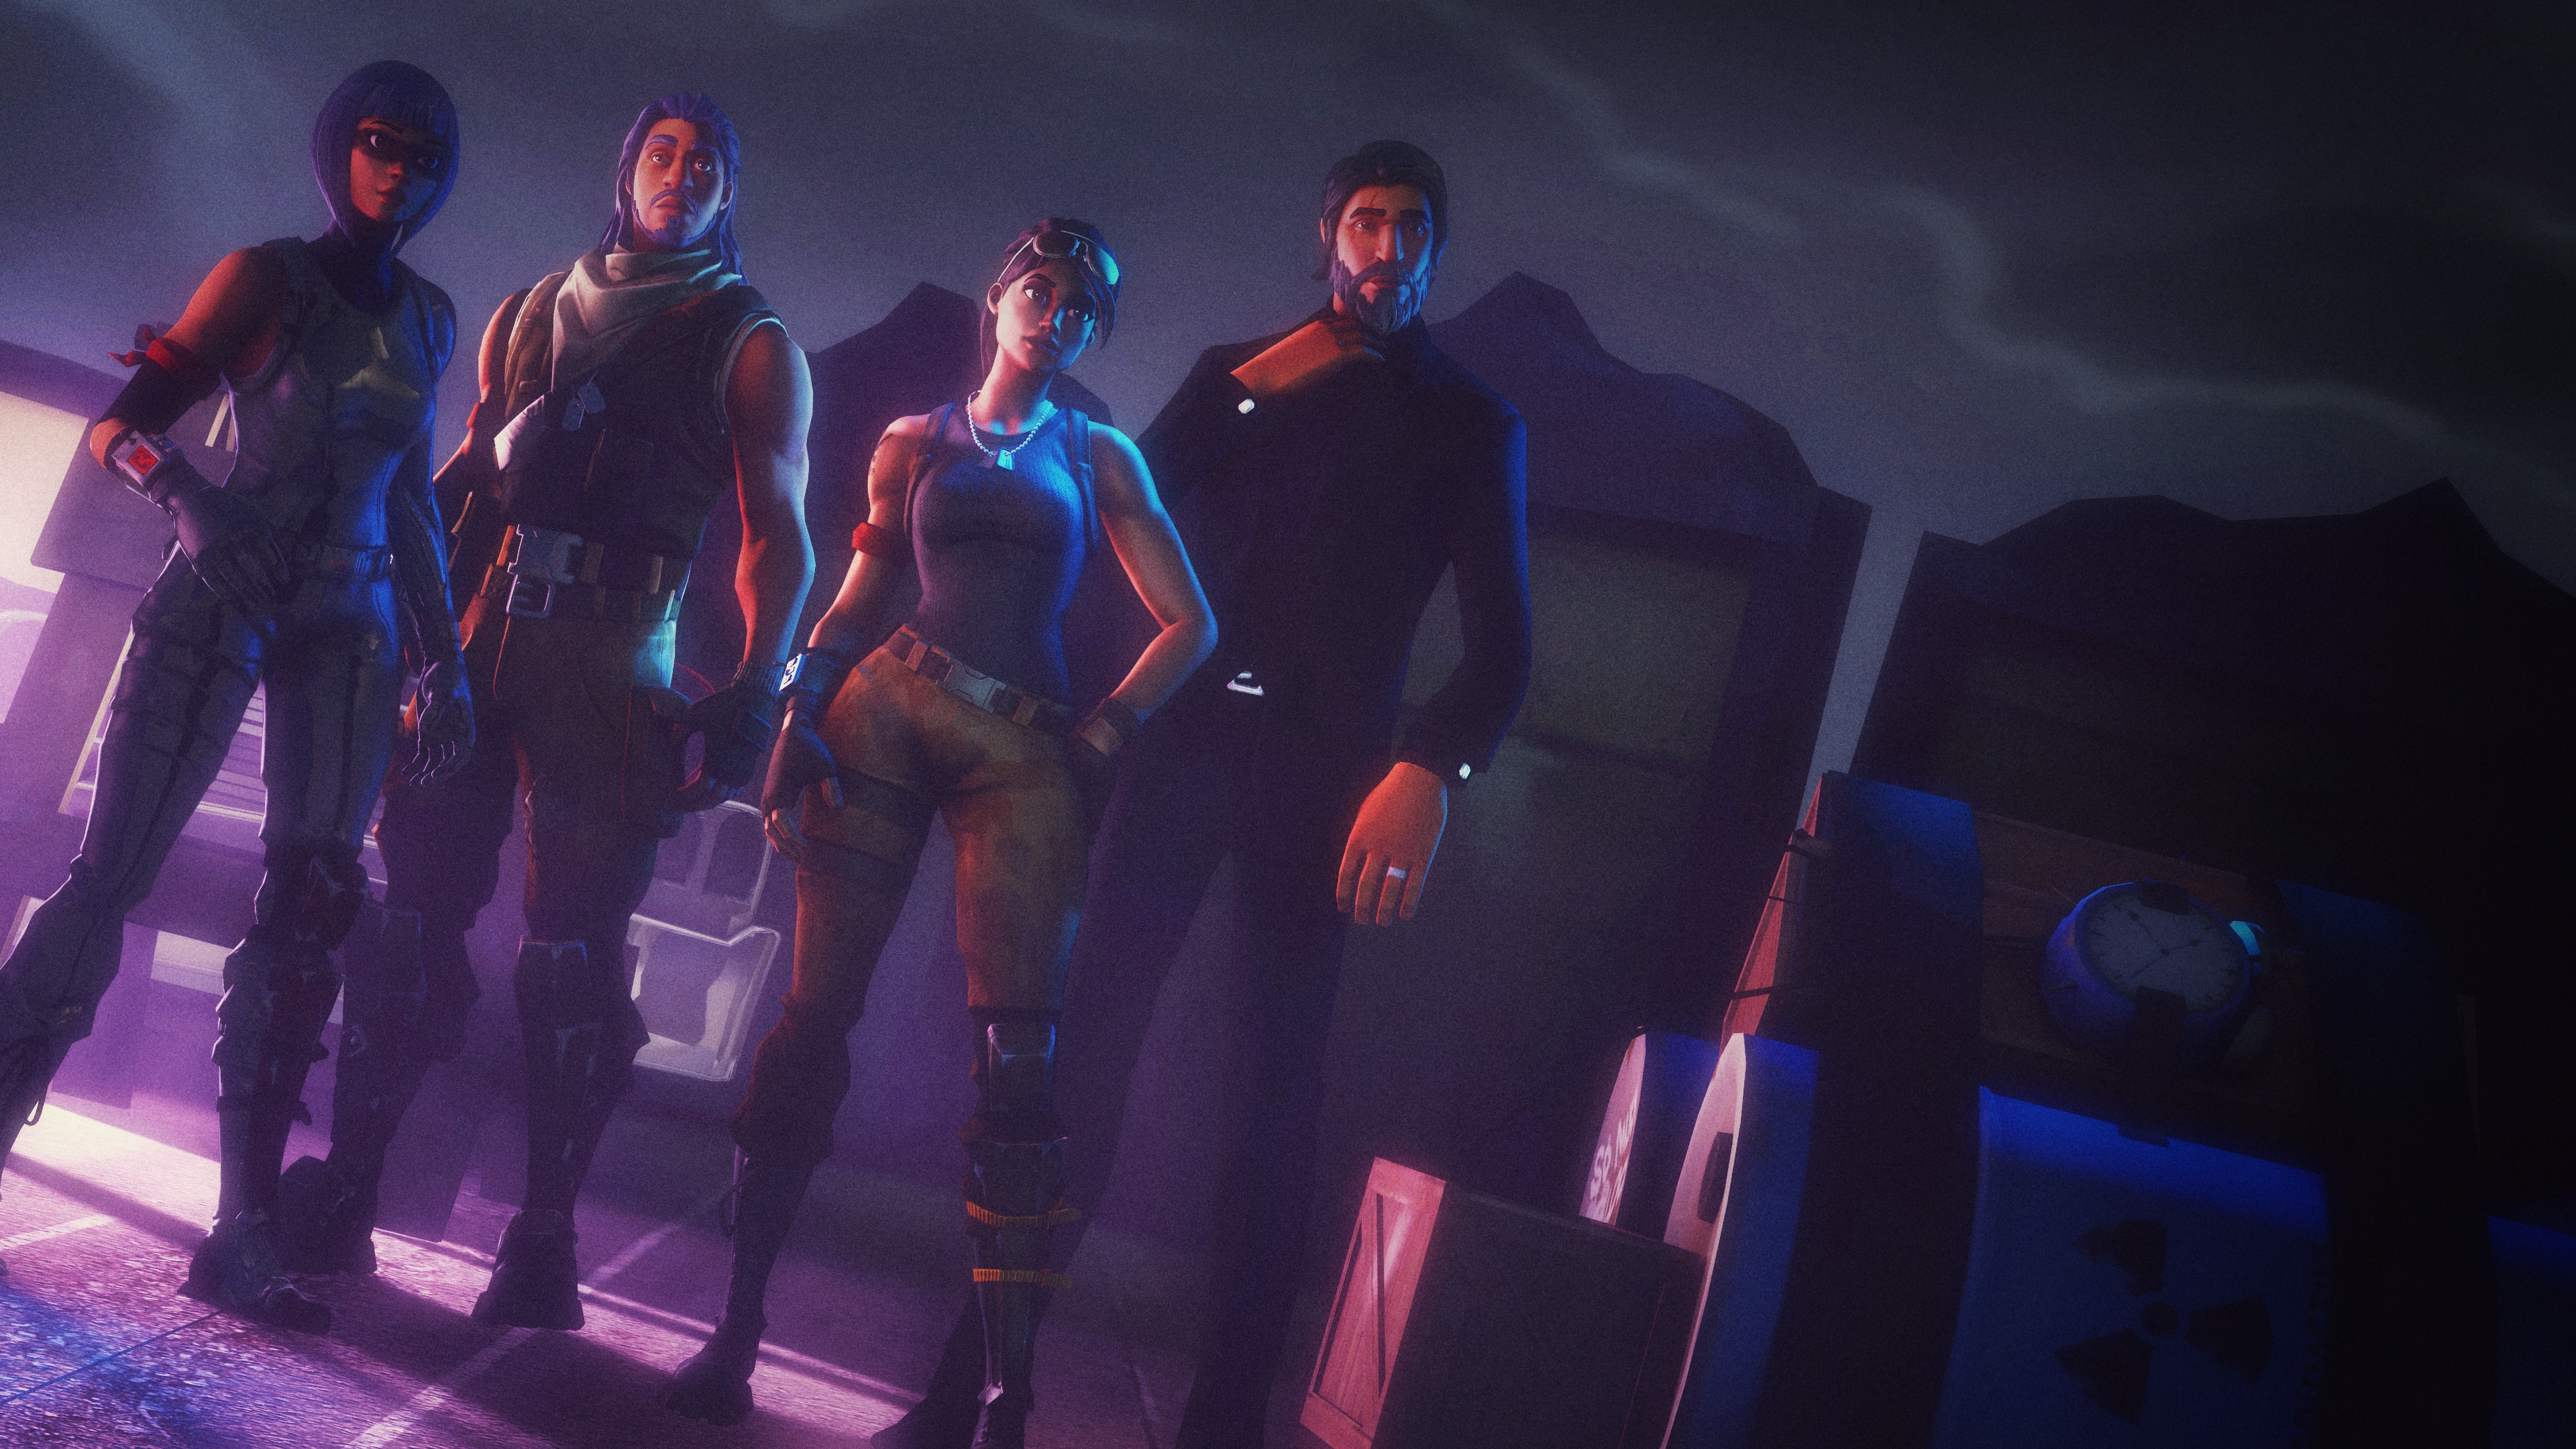 1080p Cool Fortnite Pictures 1920x1080 Fortnite Team Laptop Full Hd 1080p Hd 4k Wallpapers Images Backgrounds Photos And Pictures